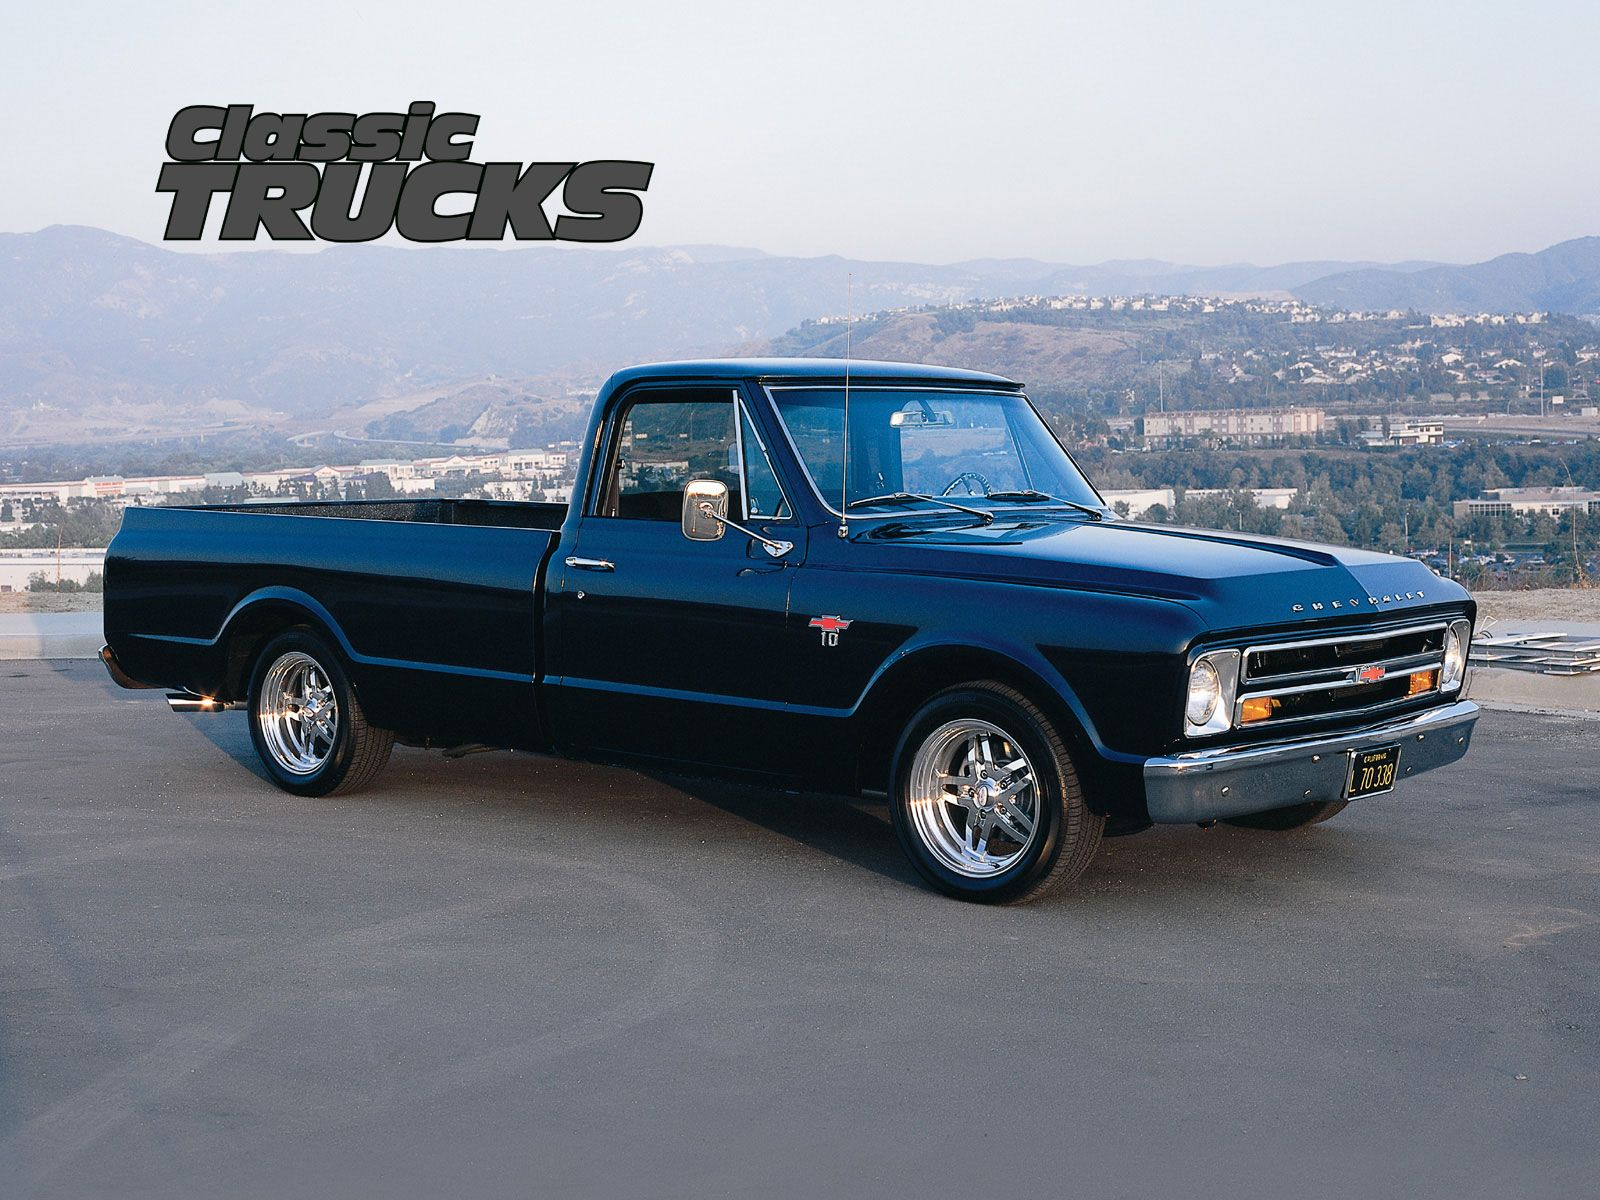 free desktop wallpapers 005 zclassic truck desktop wallpapers 1600x1200